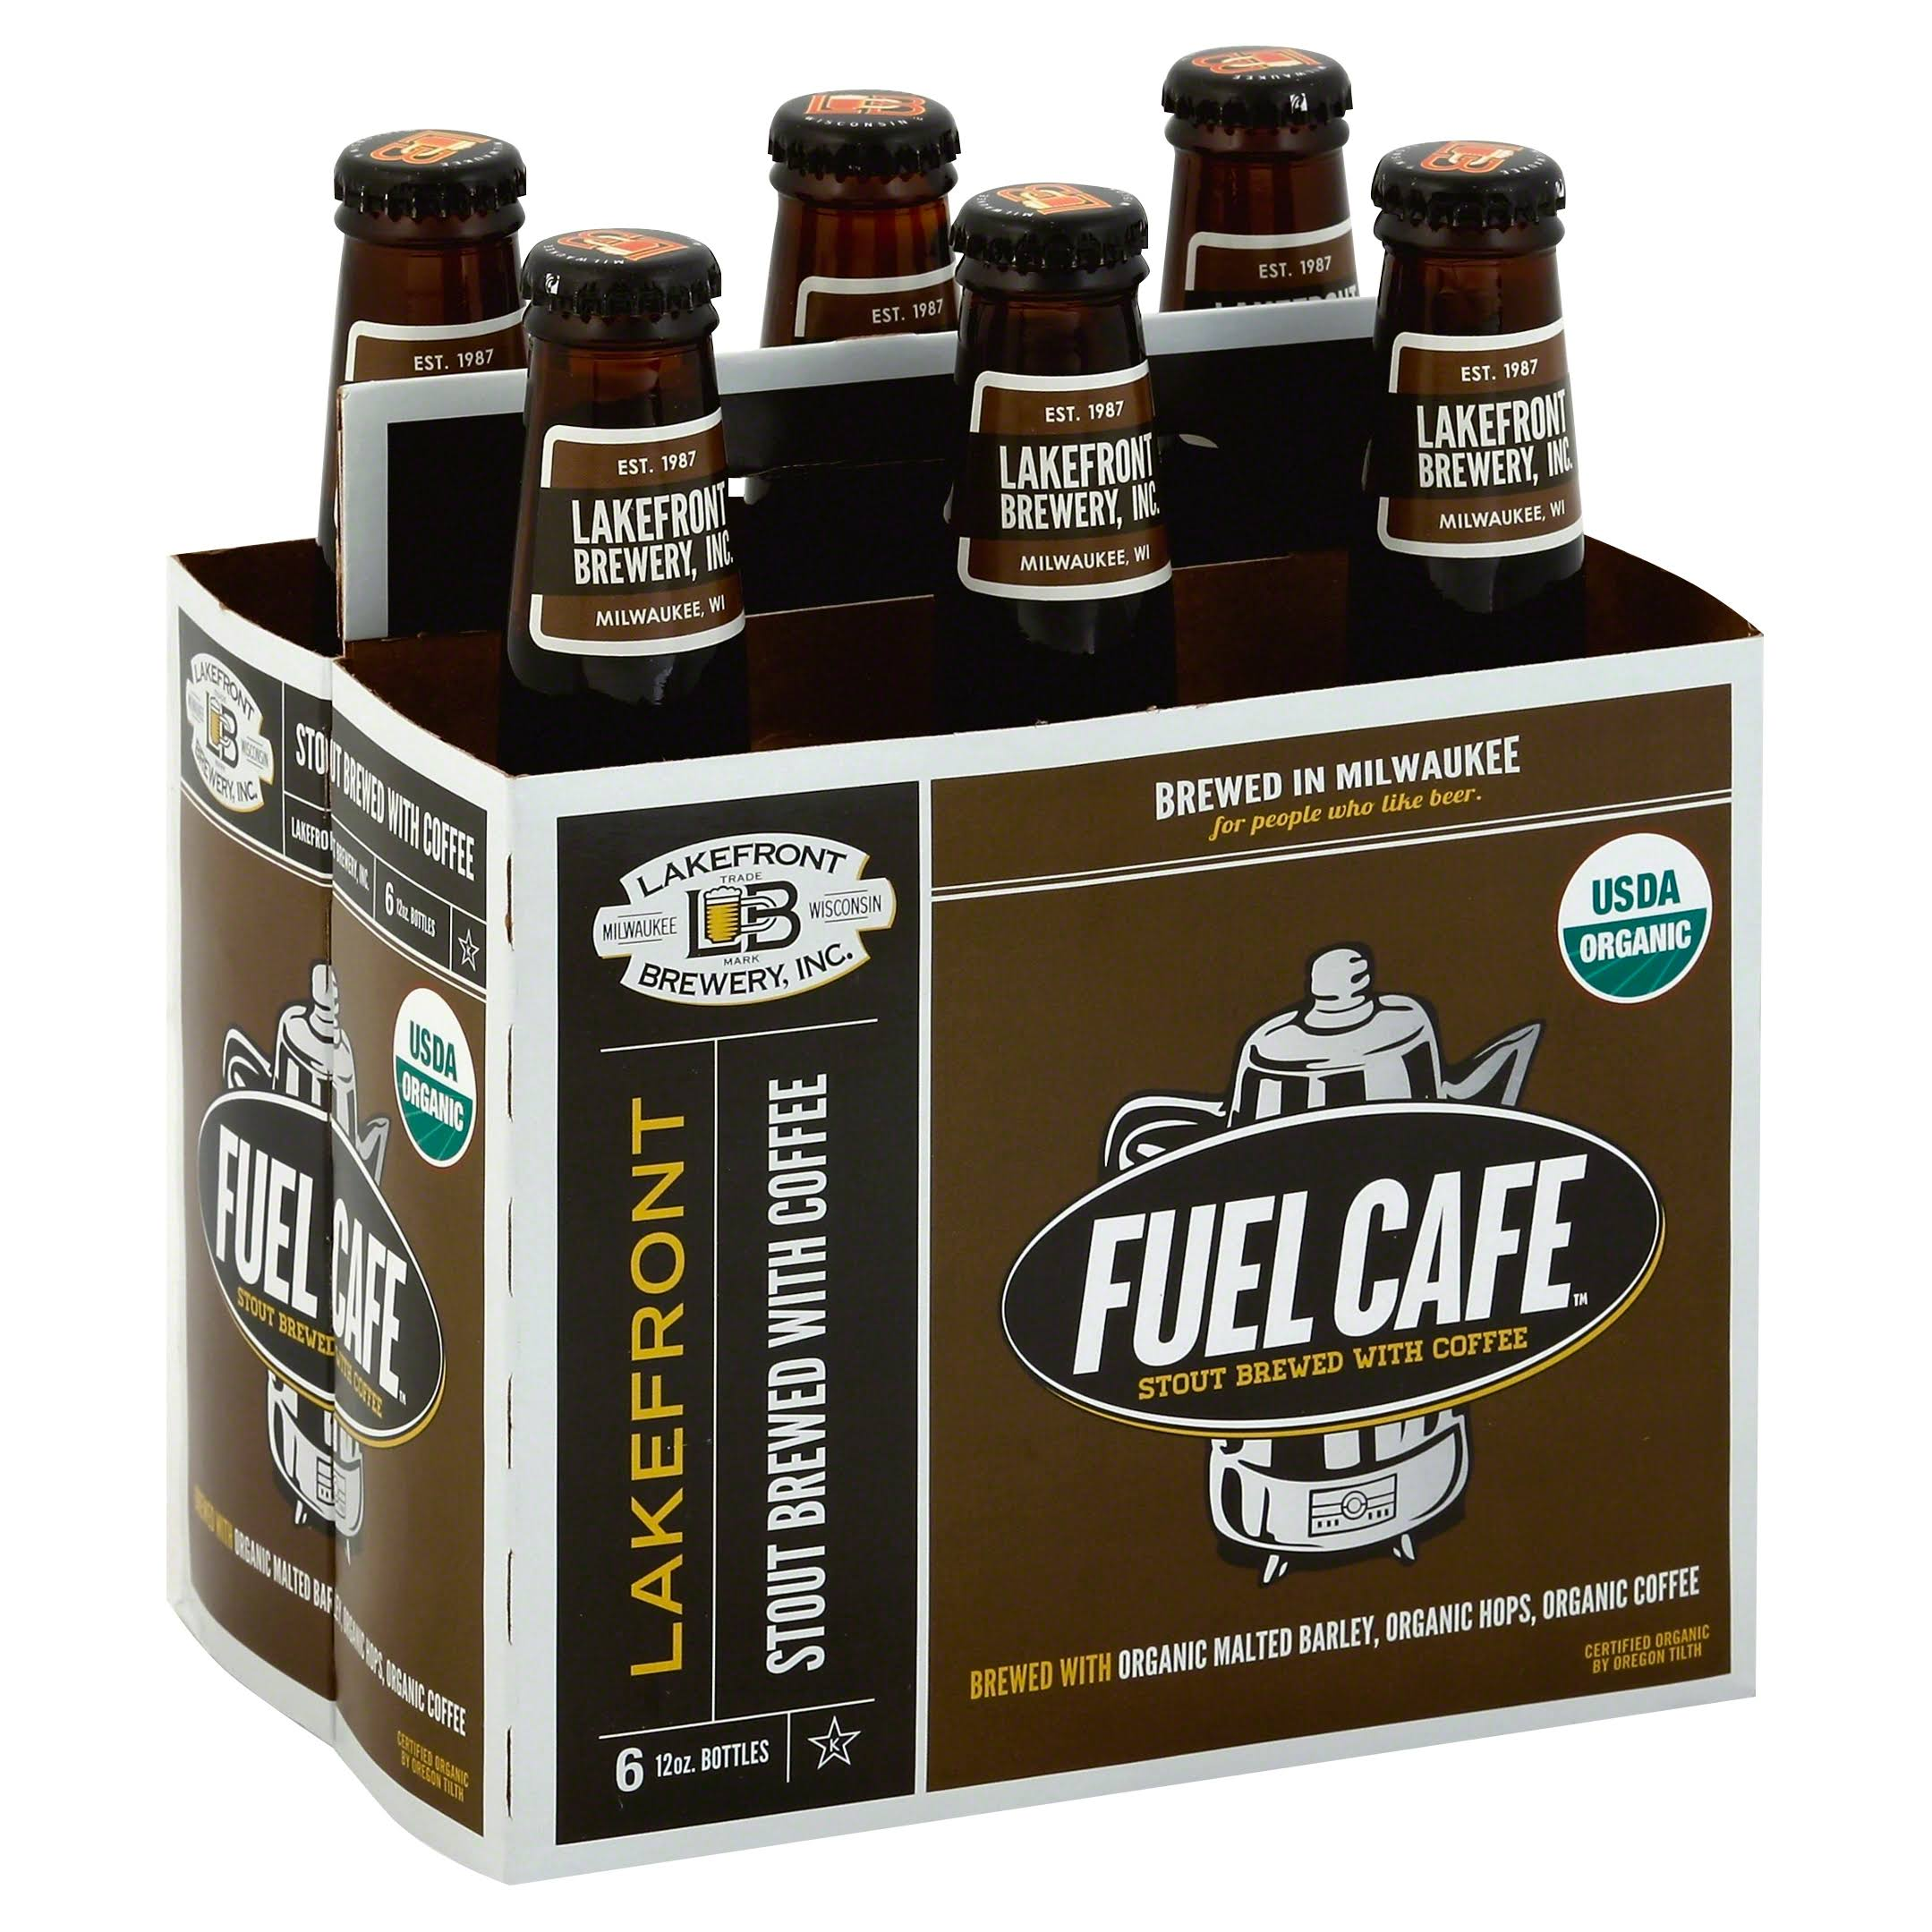 Lakefront Brewery Stout, Fuel Cafe - 6 pack, 12 oz bottles